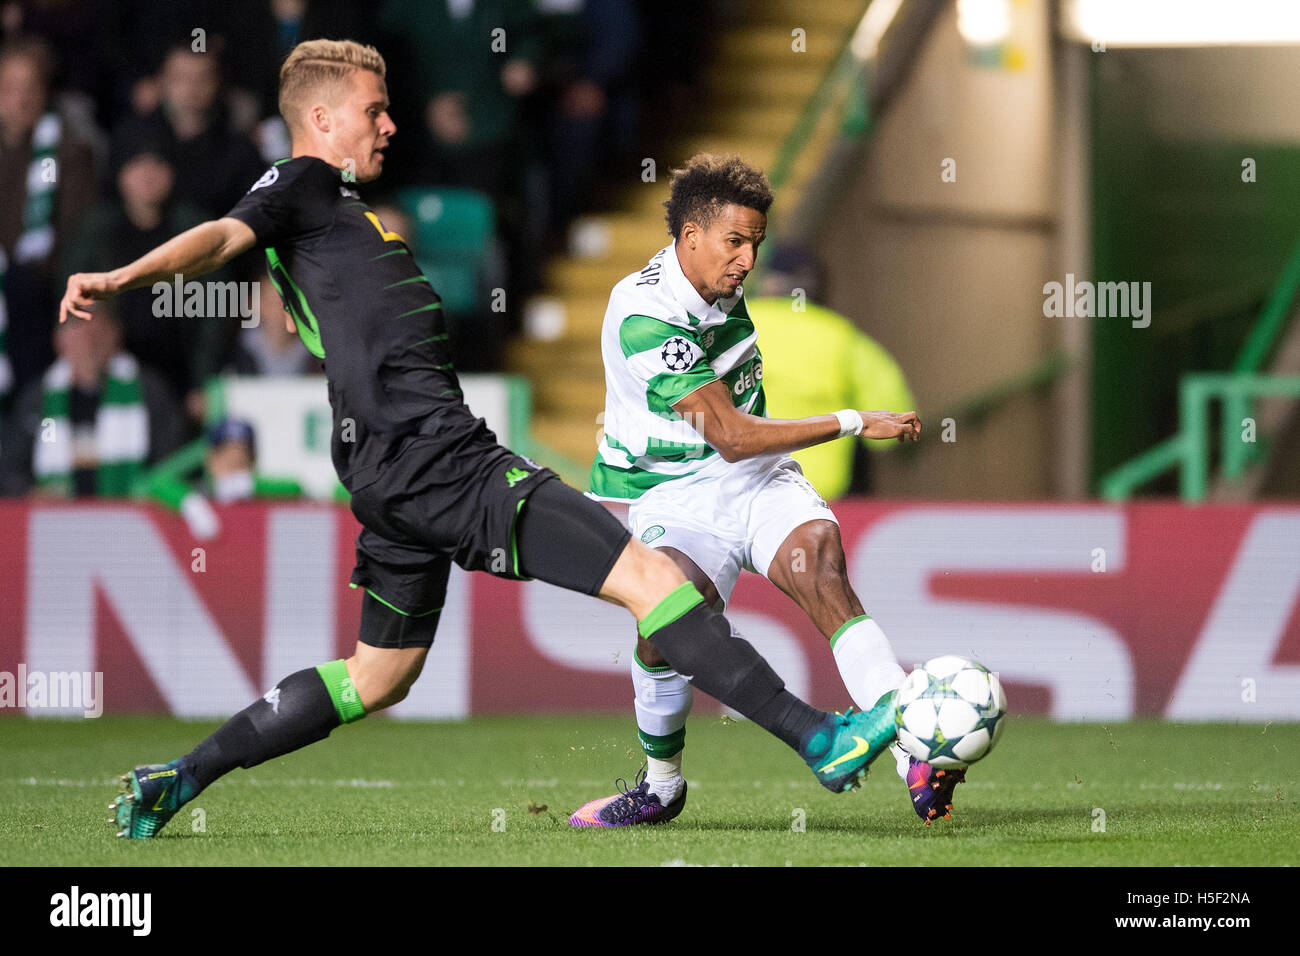 Celtic Park, Glasgow, Scotland. 19th Oct, 2016. Soccer: Champions League, group stage, group C, third match day, - Stock Image